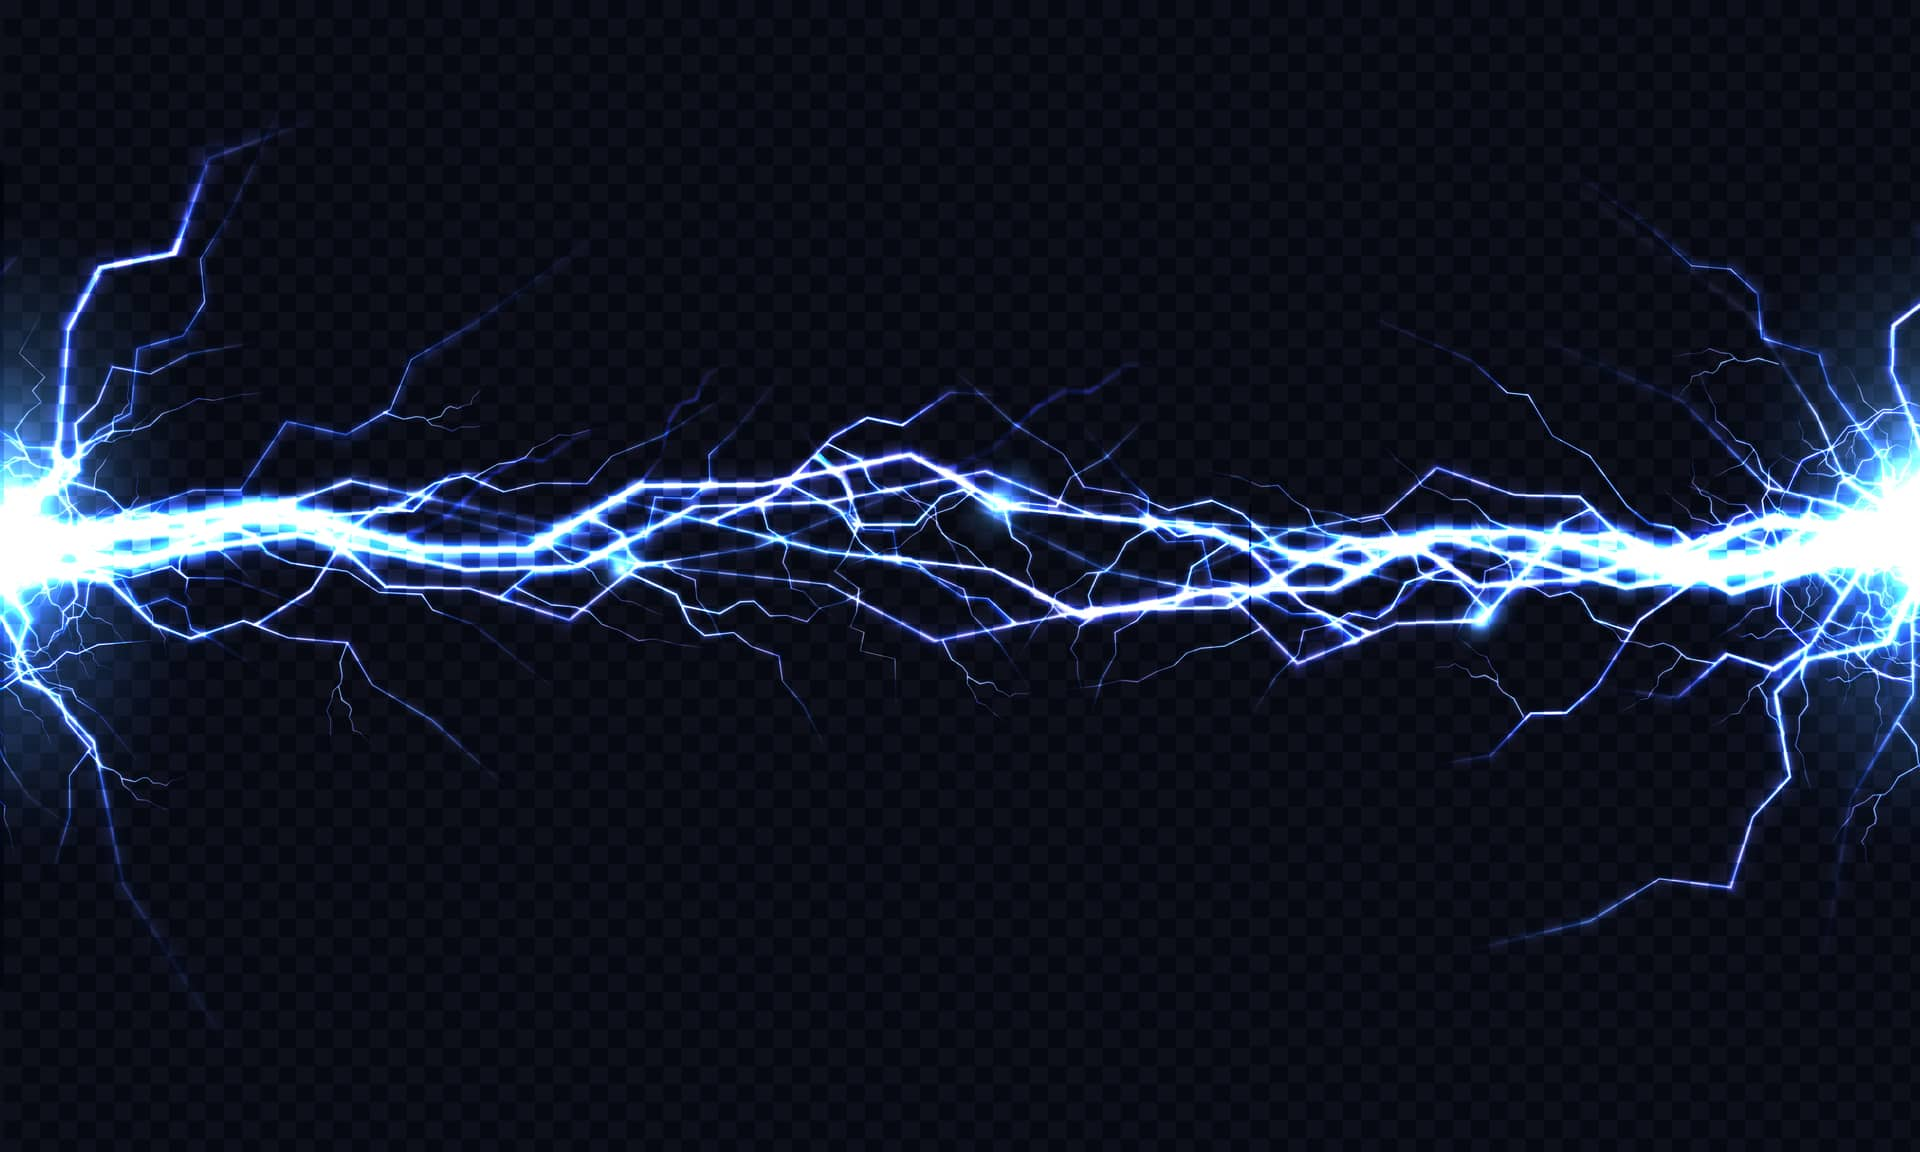 Electrical energy discharge 3